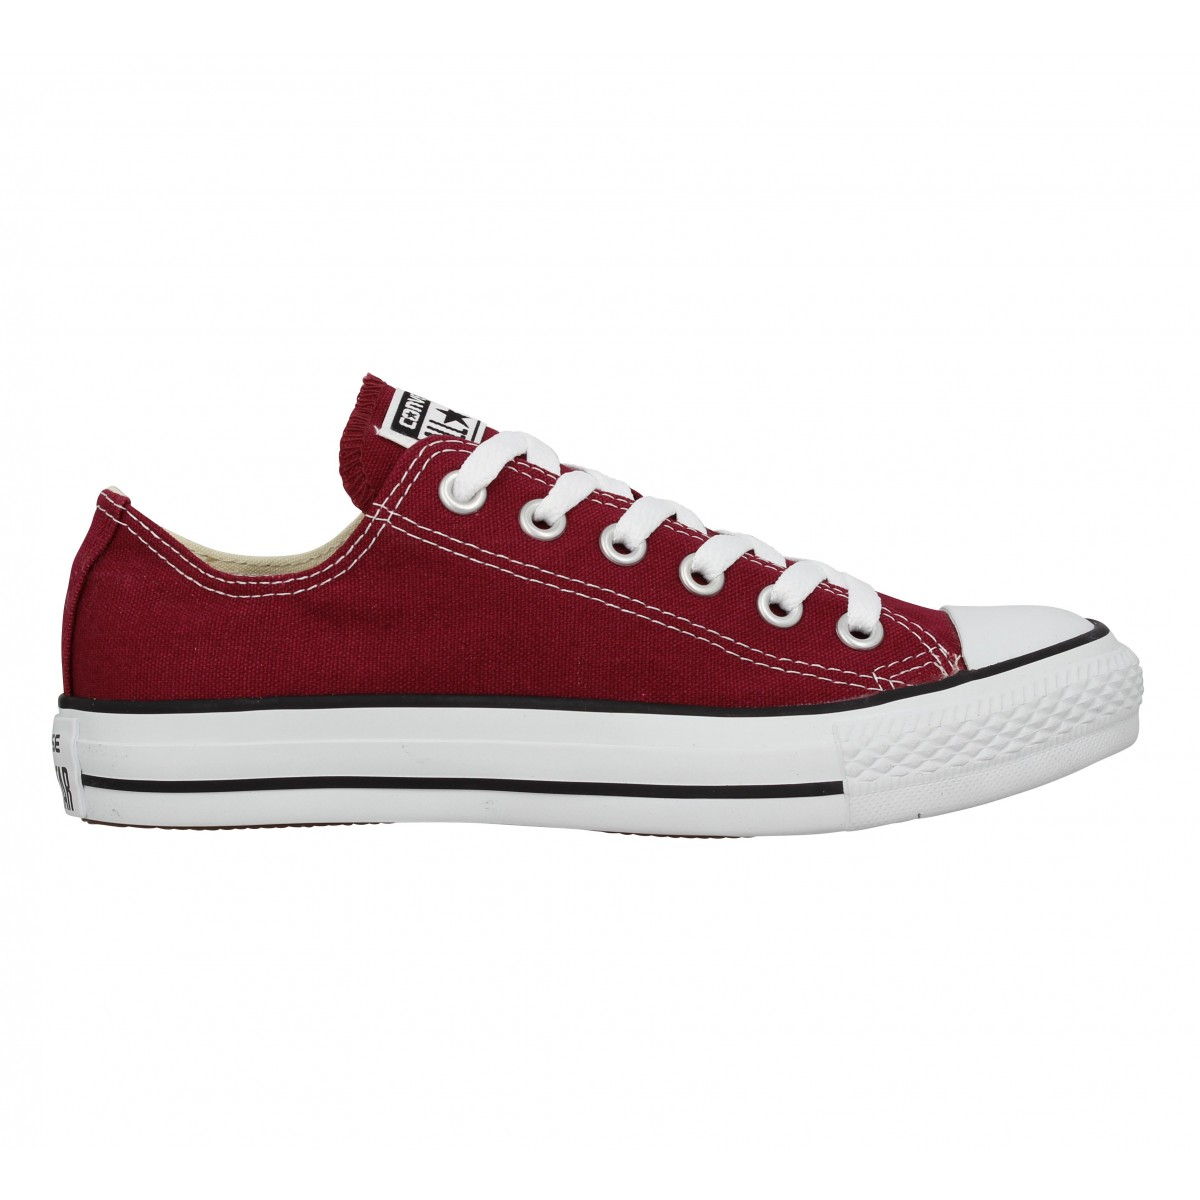 Converse Chuck Taylor All Star Toile Femme Bordeaux